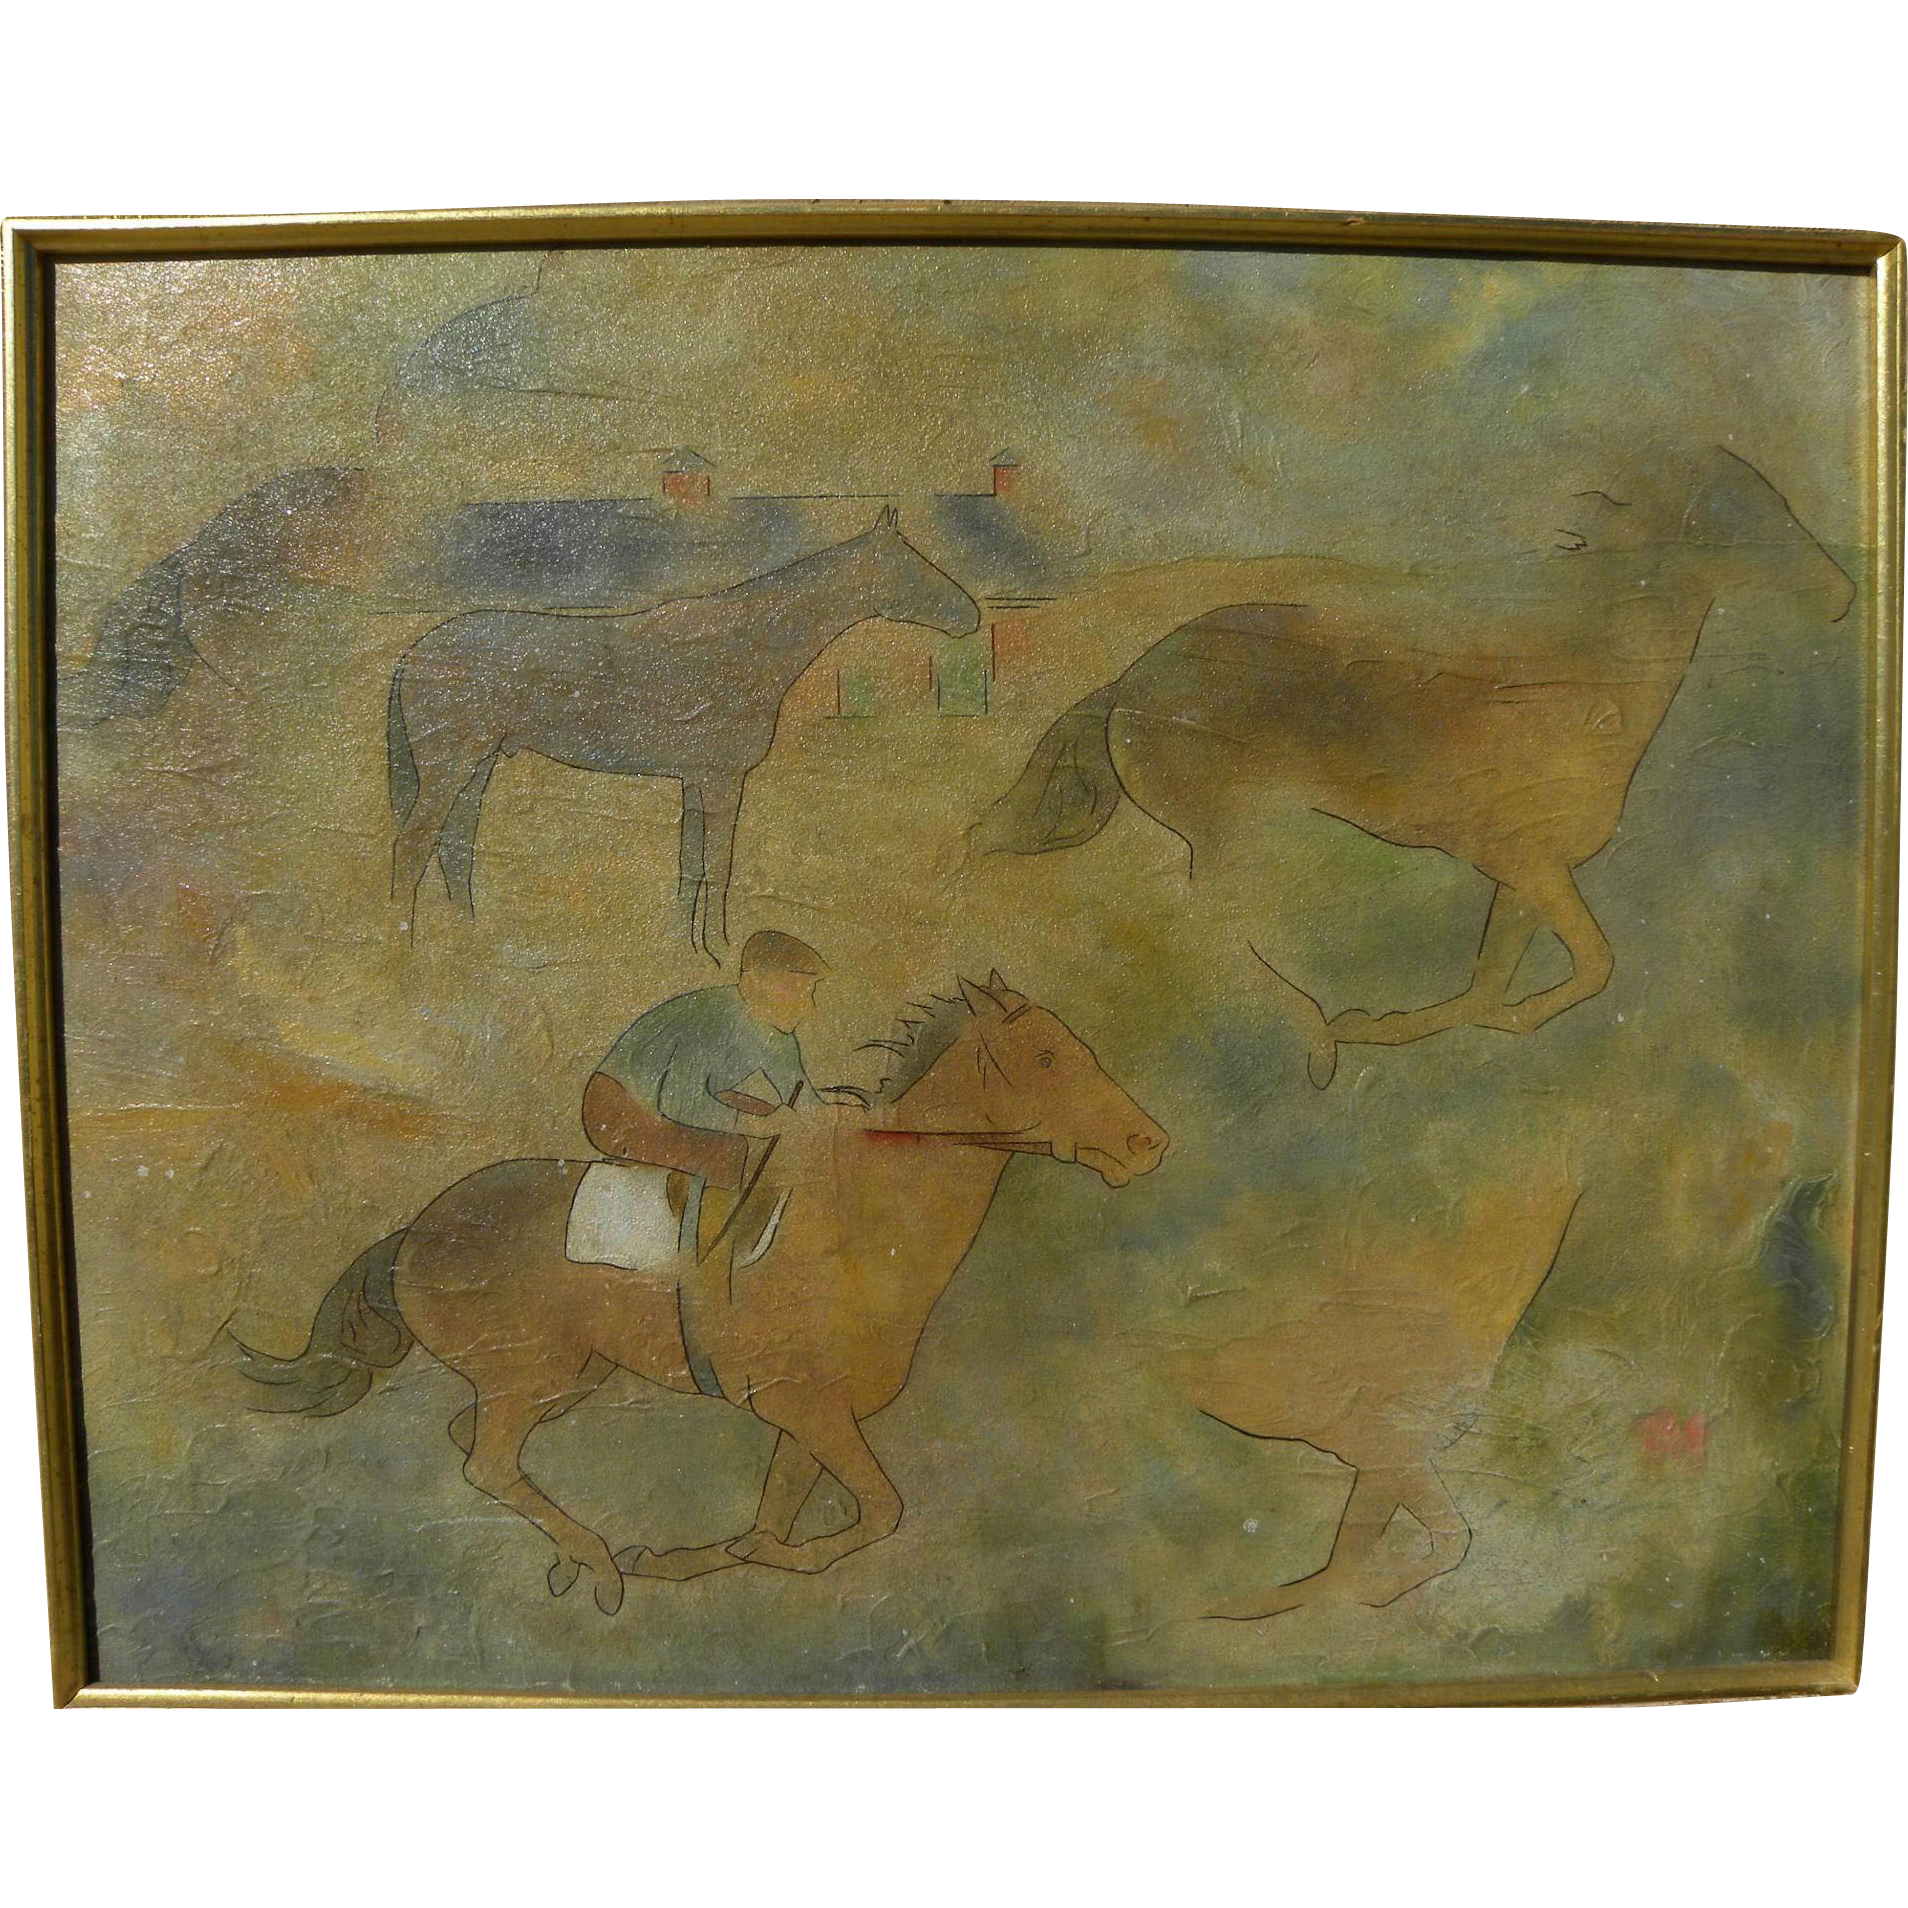 Modernist Cubist 1959 painting of horses signed F. G. Coogan